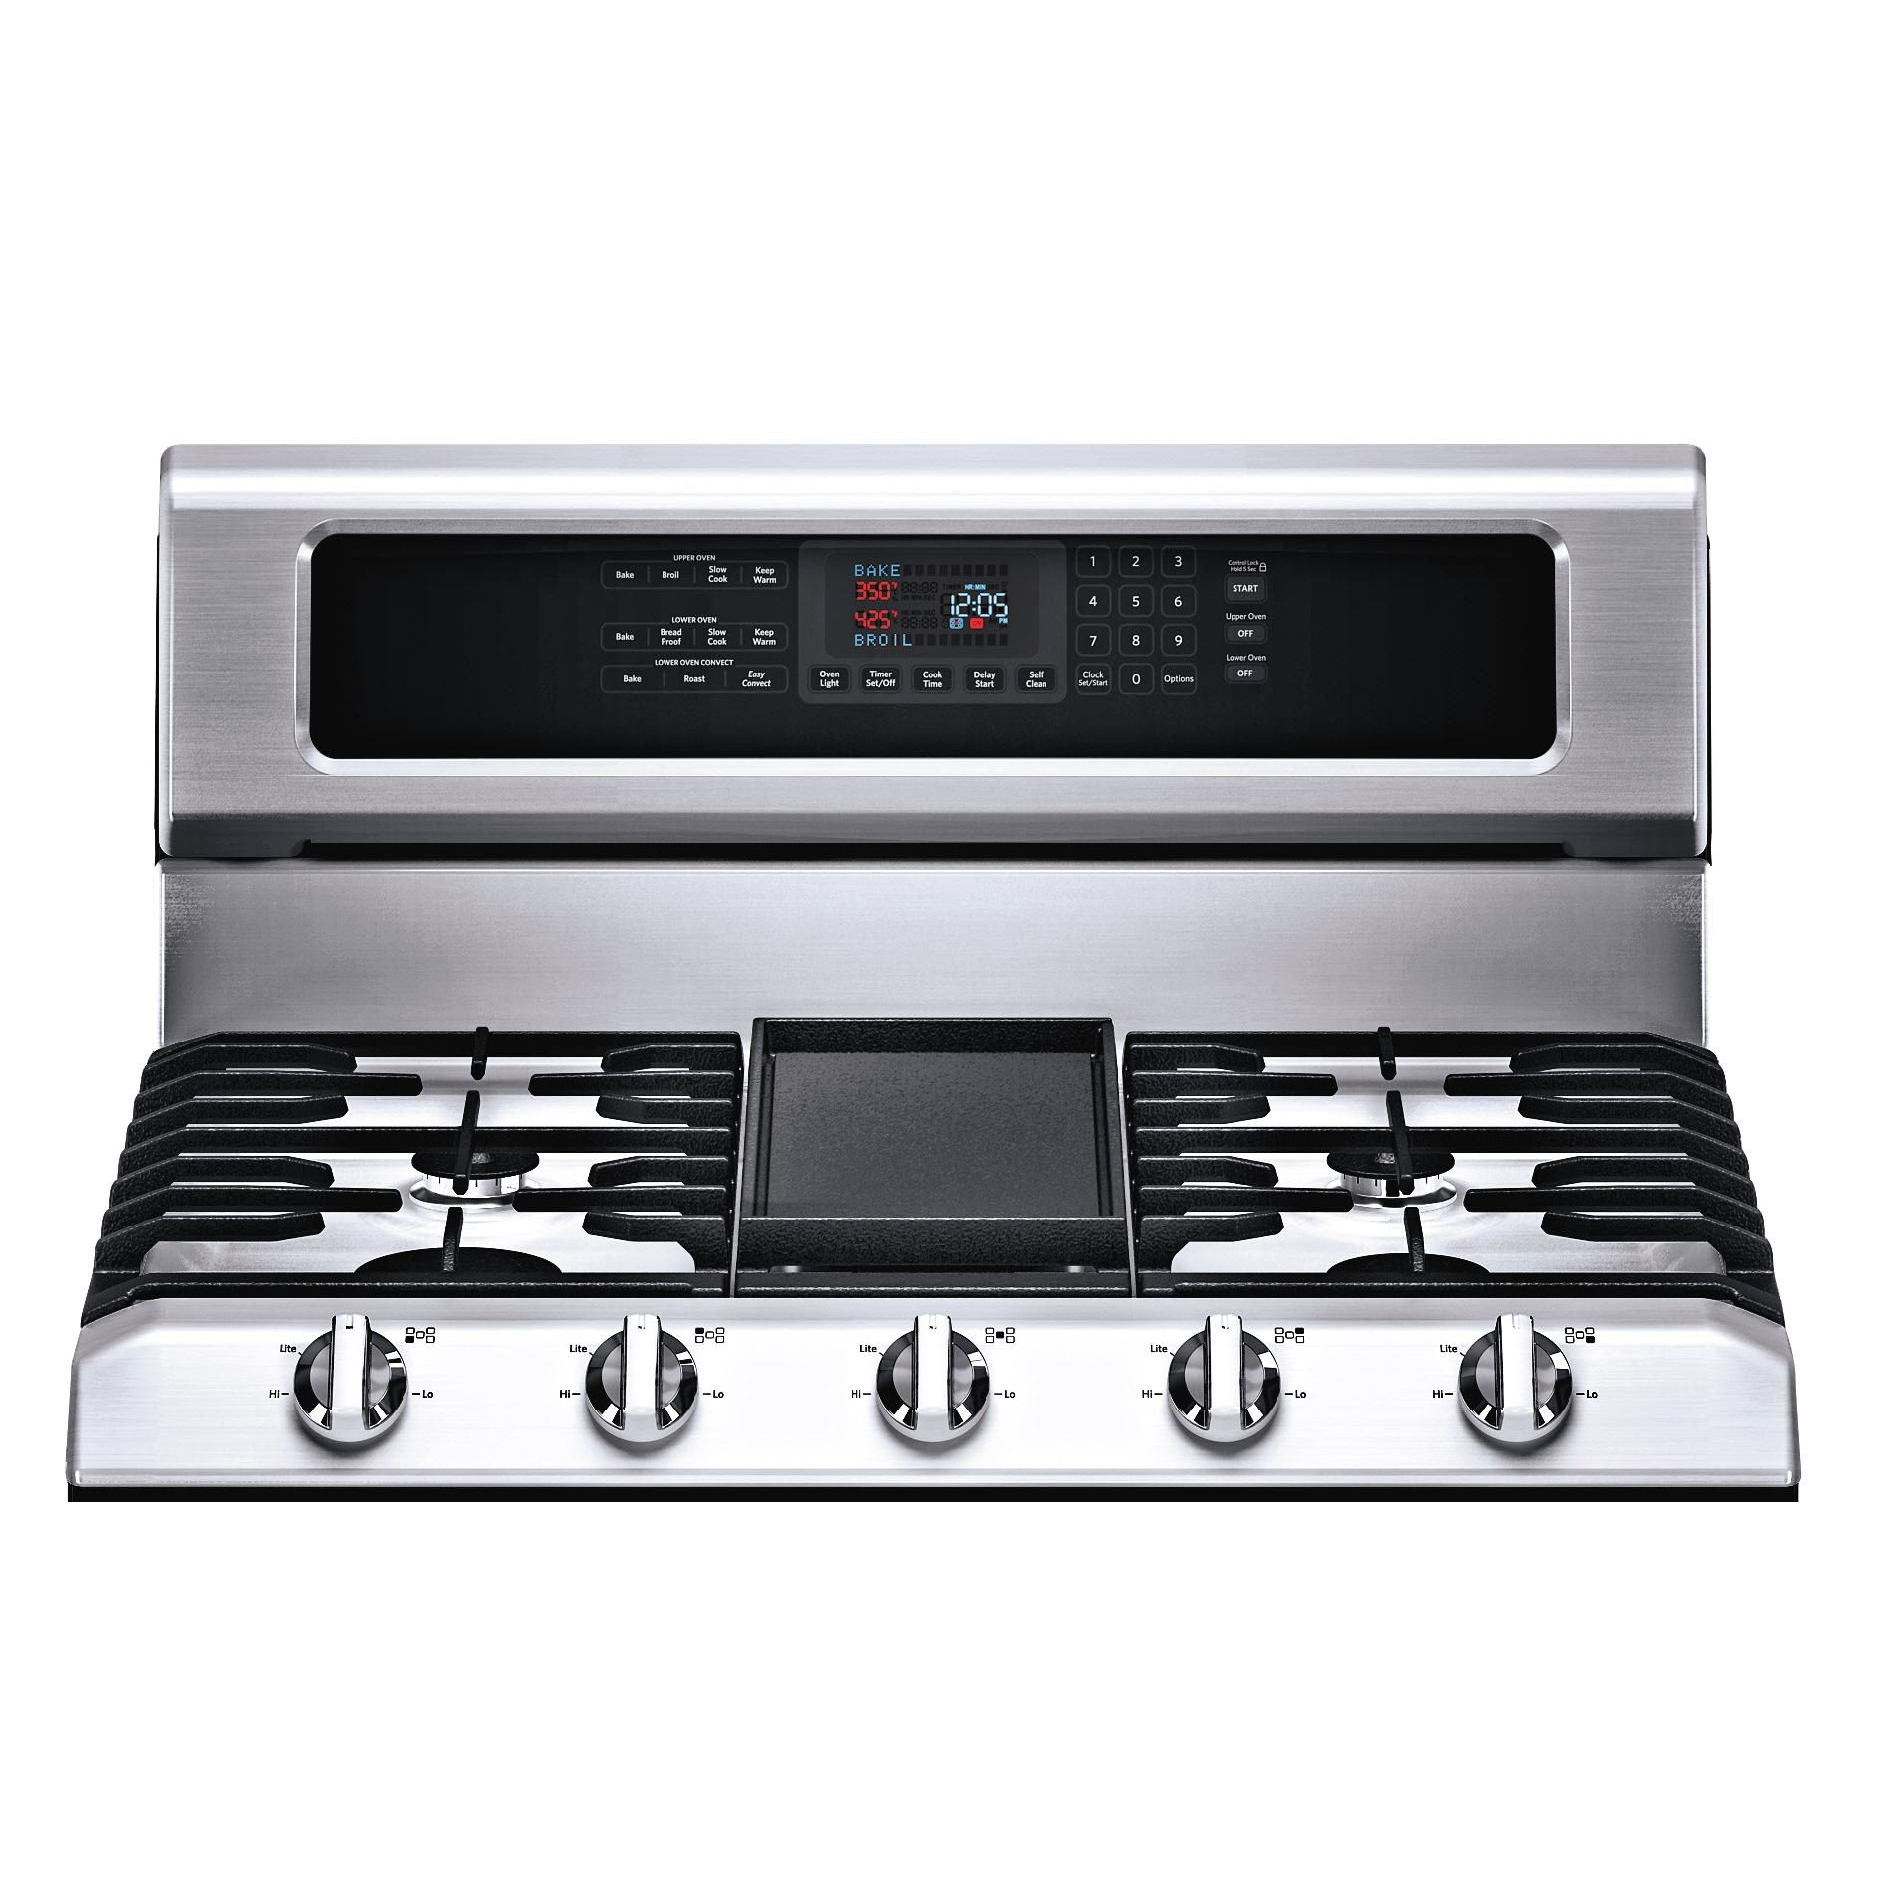 KitchenAid 6 cu. ft. Double Oven Gas Range